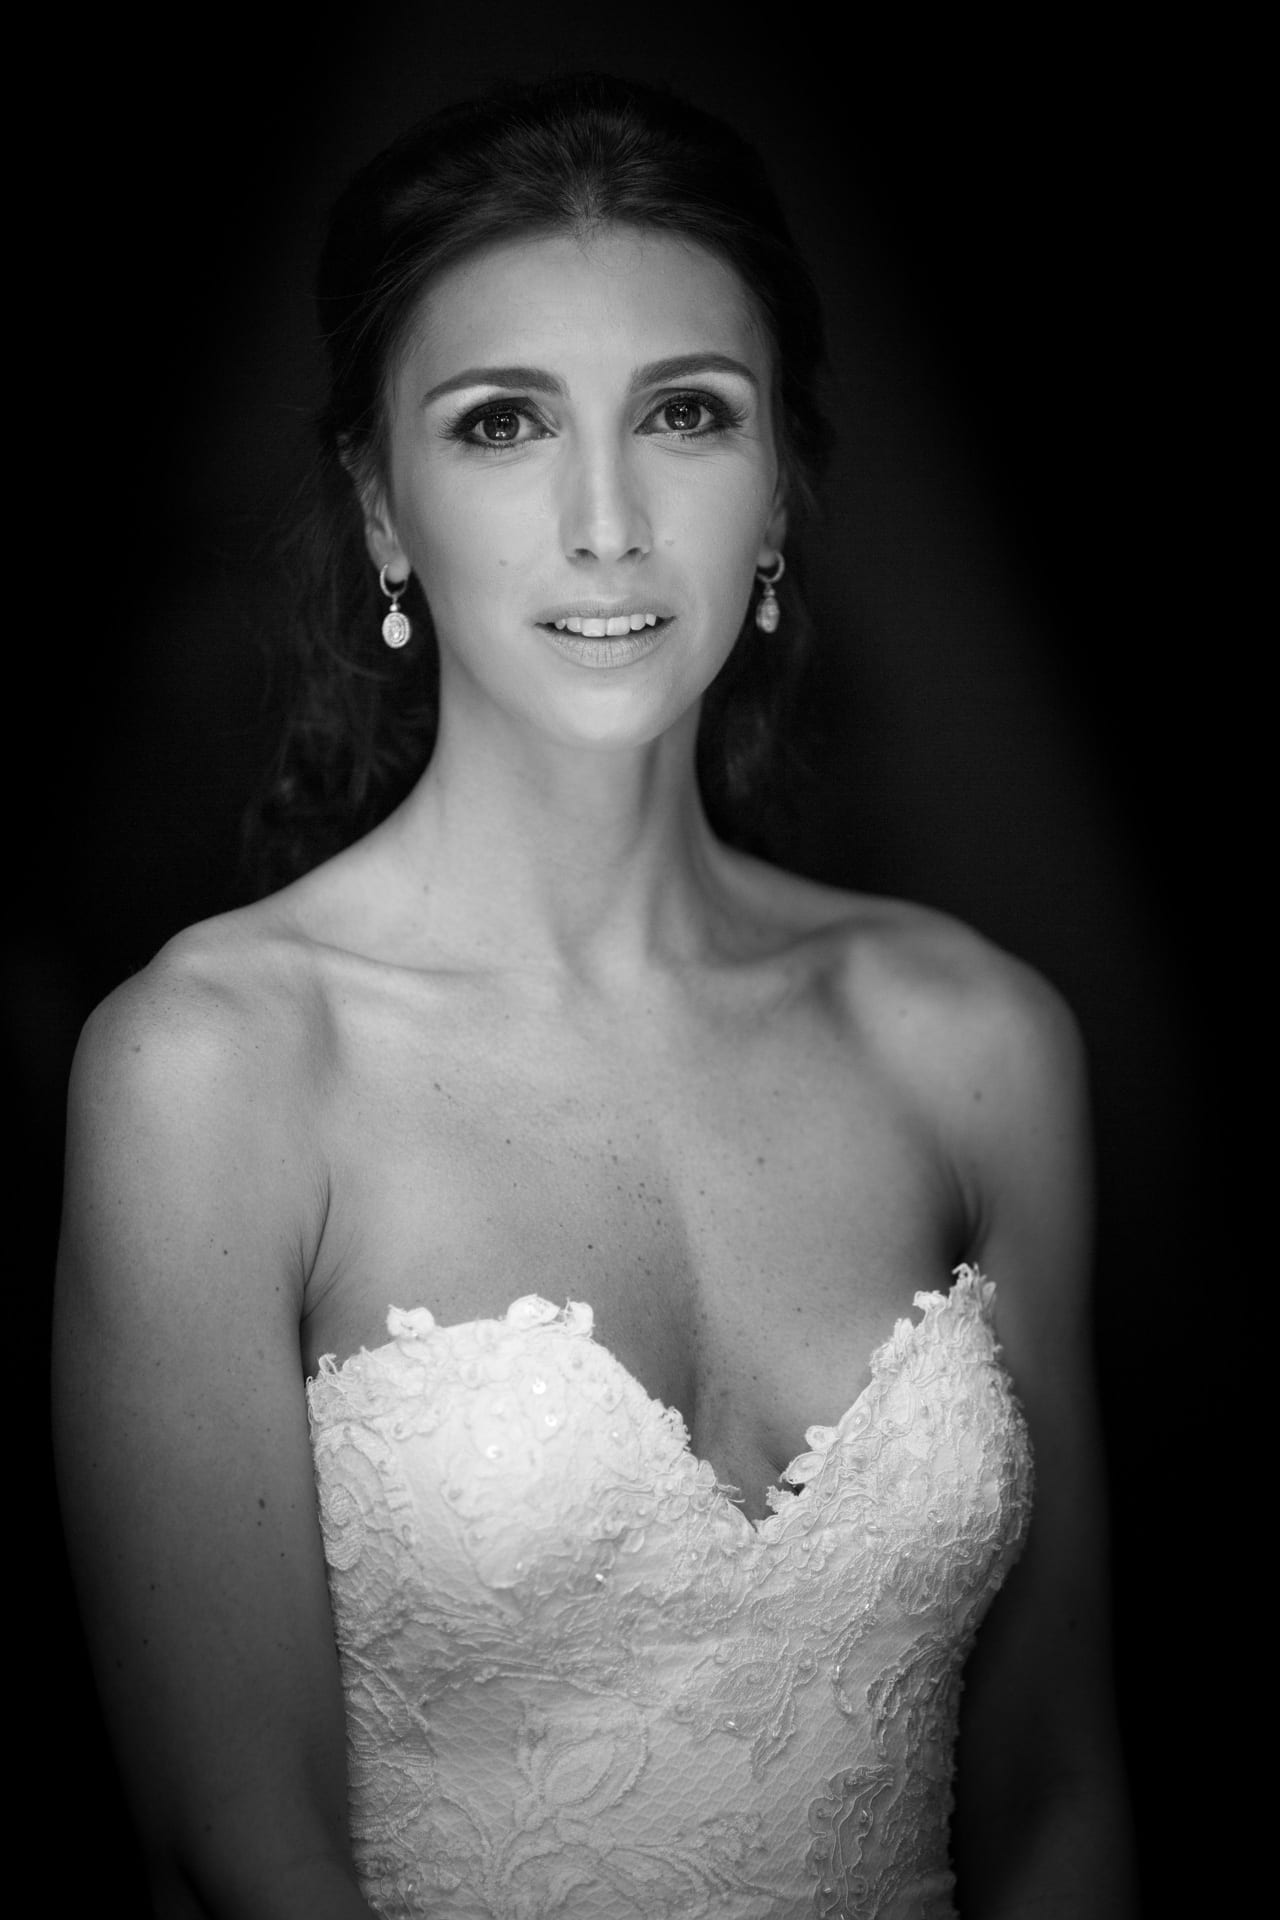 https://righiphotography-com.s3.eu-central-1.amazonaws.com/wp-content/uploads/2020/02/02183355/Weddin-Photo-Classic-Style-Studio-Fotografico-Righi-RIGHI-4.jpg